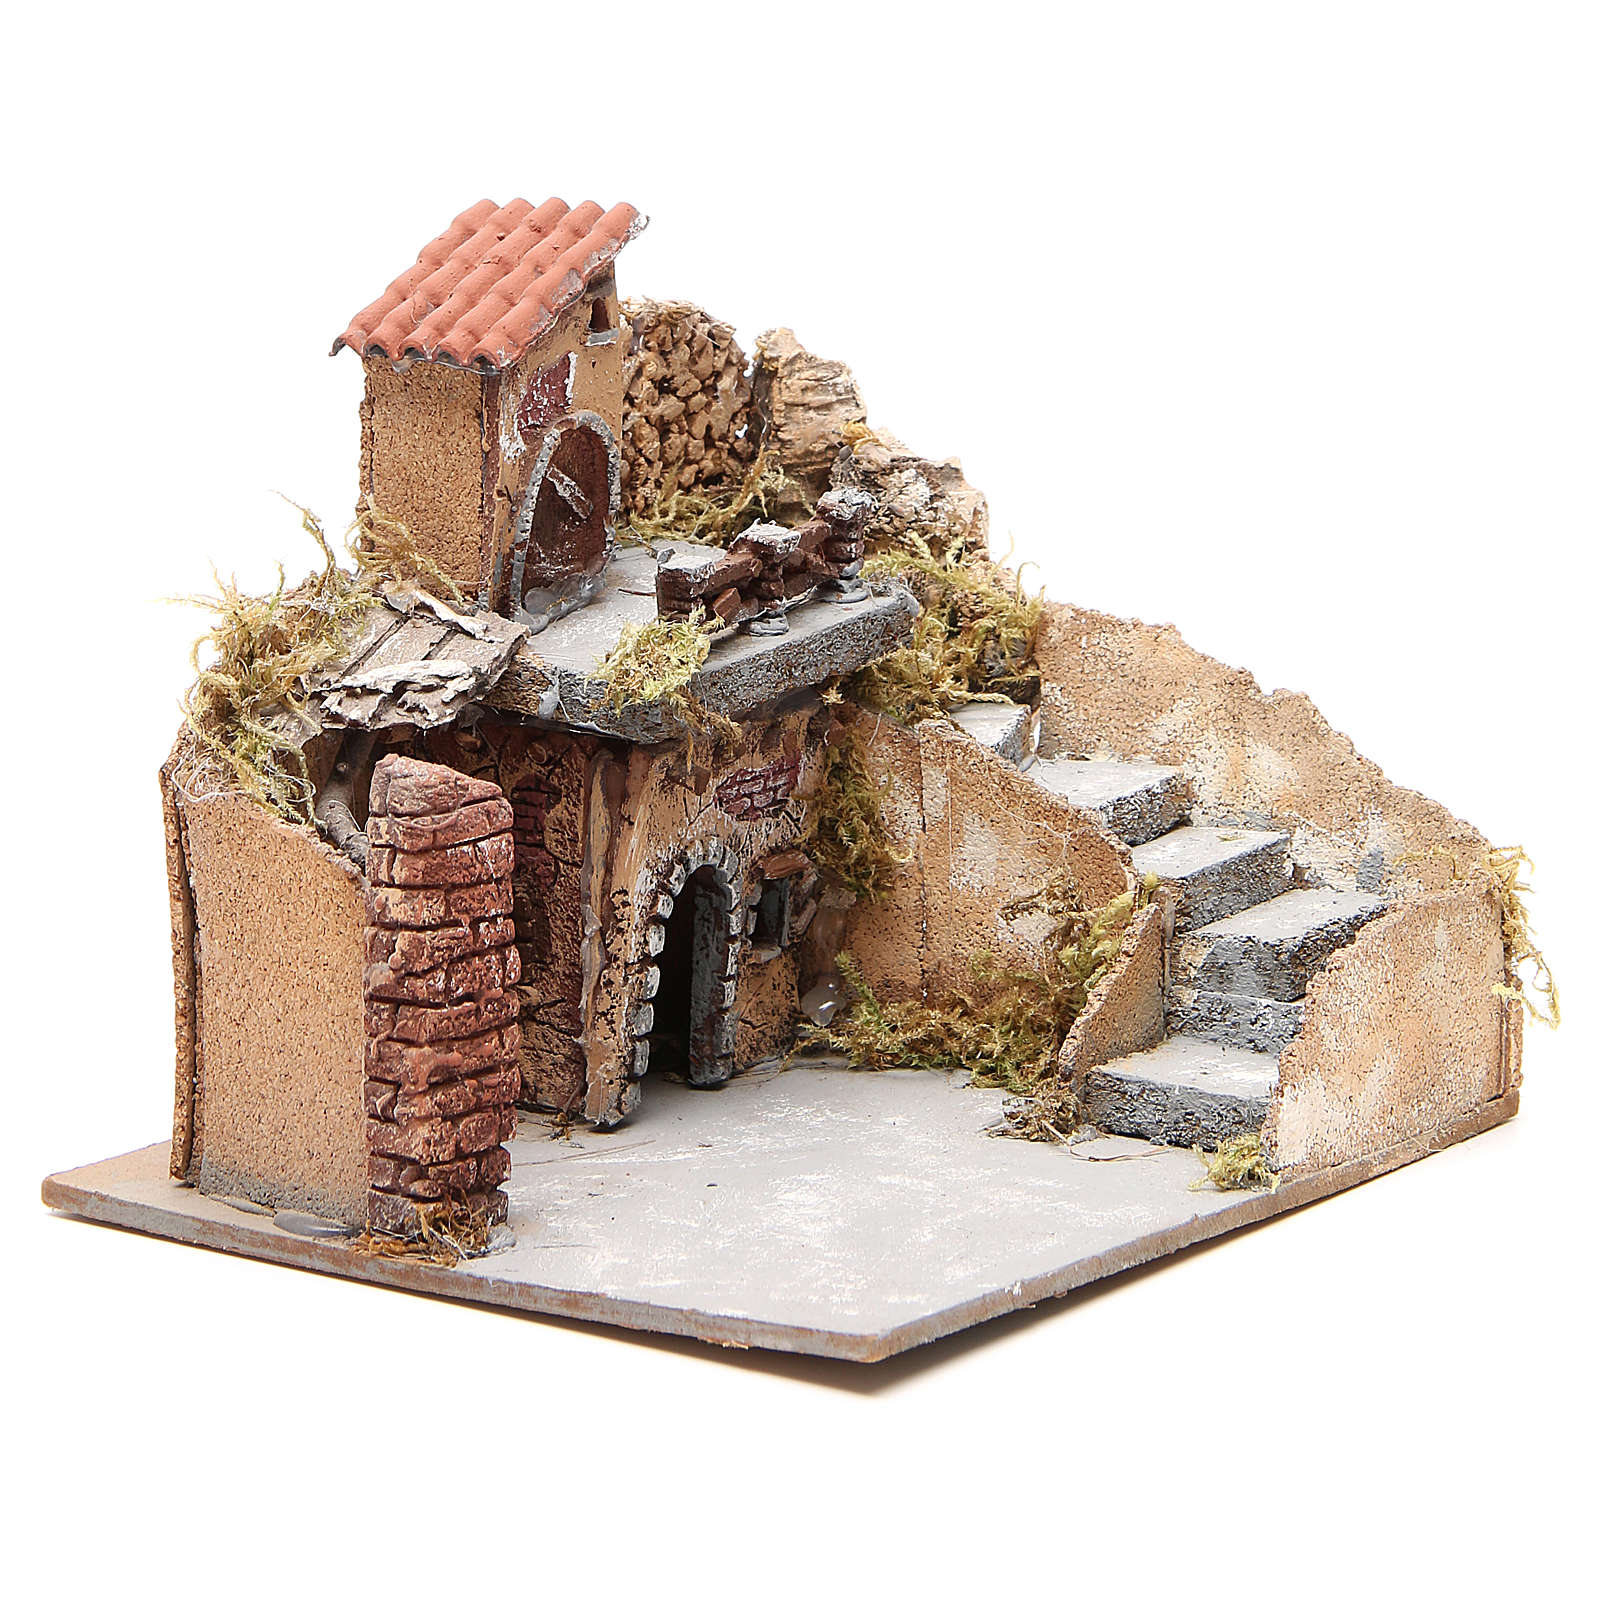 Composition of houses in cork and wood, Neapolitan Nativity, 20x23x20cm 4